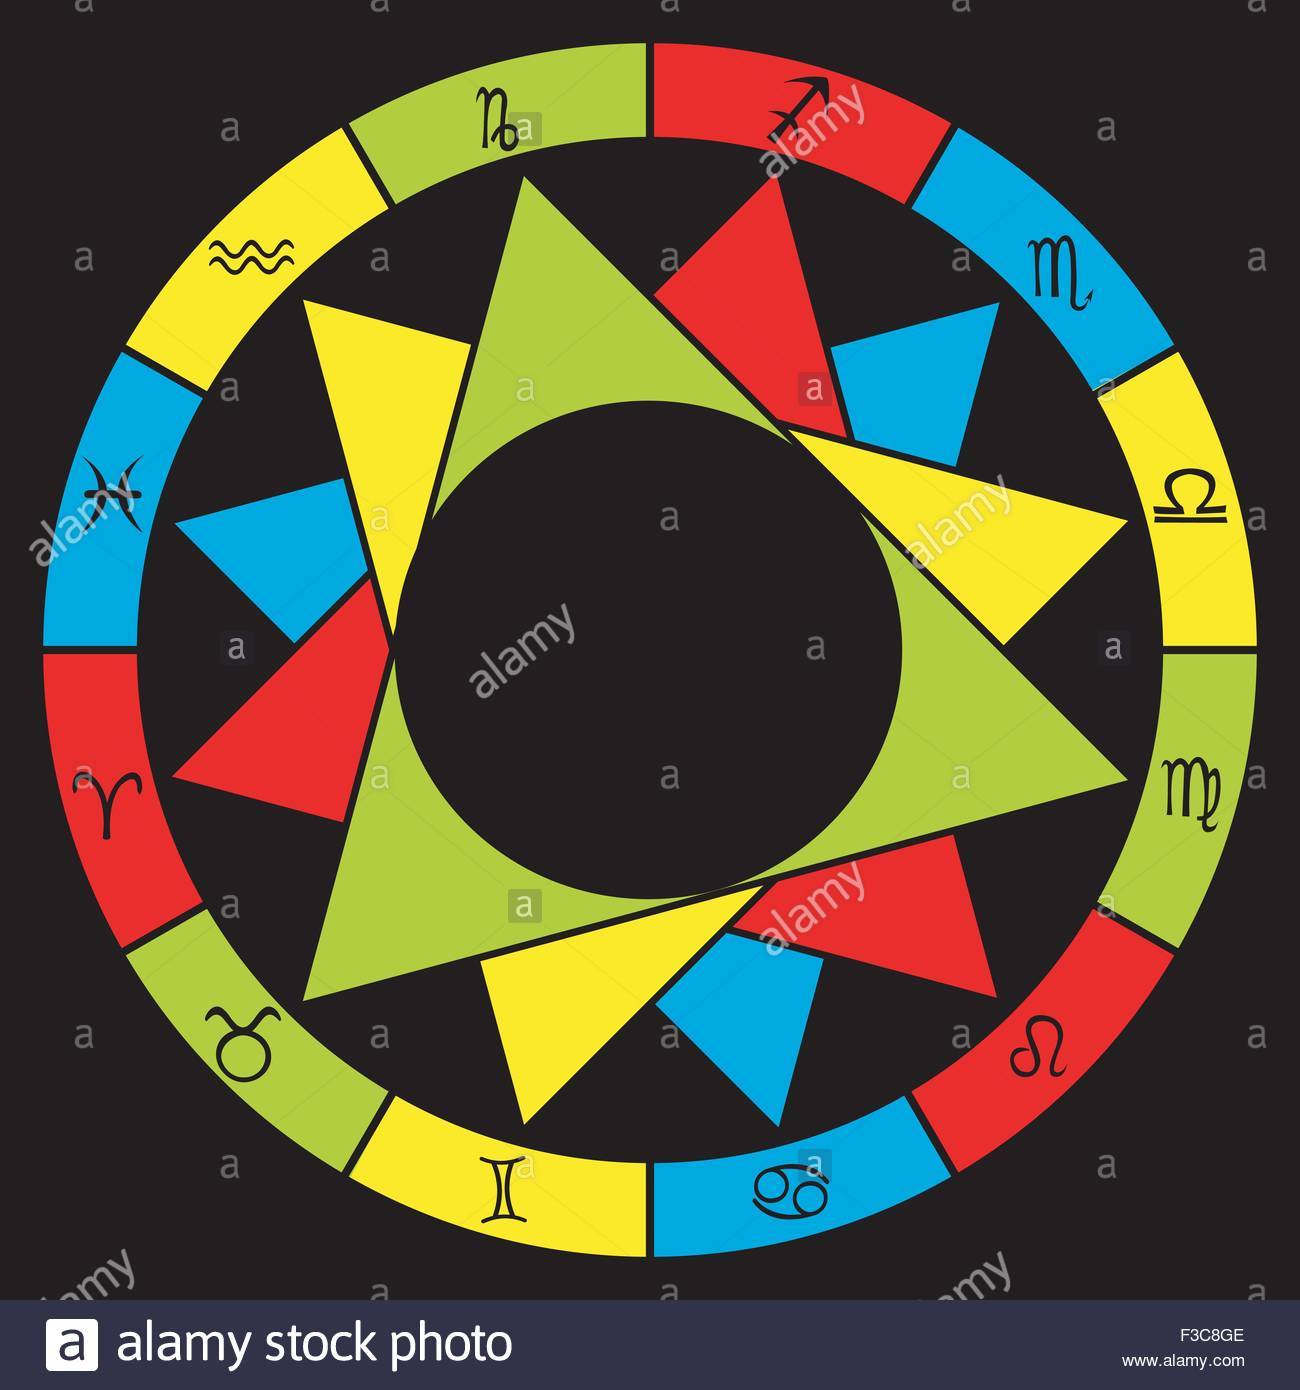 Astrology Zodiac With Natal Chart Stock Photos Astrology Zodiac